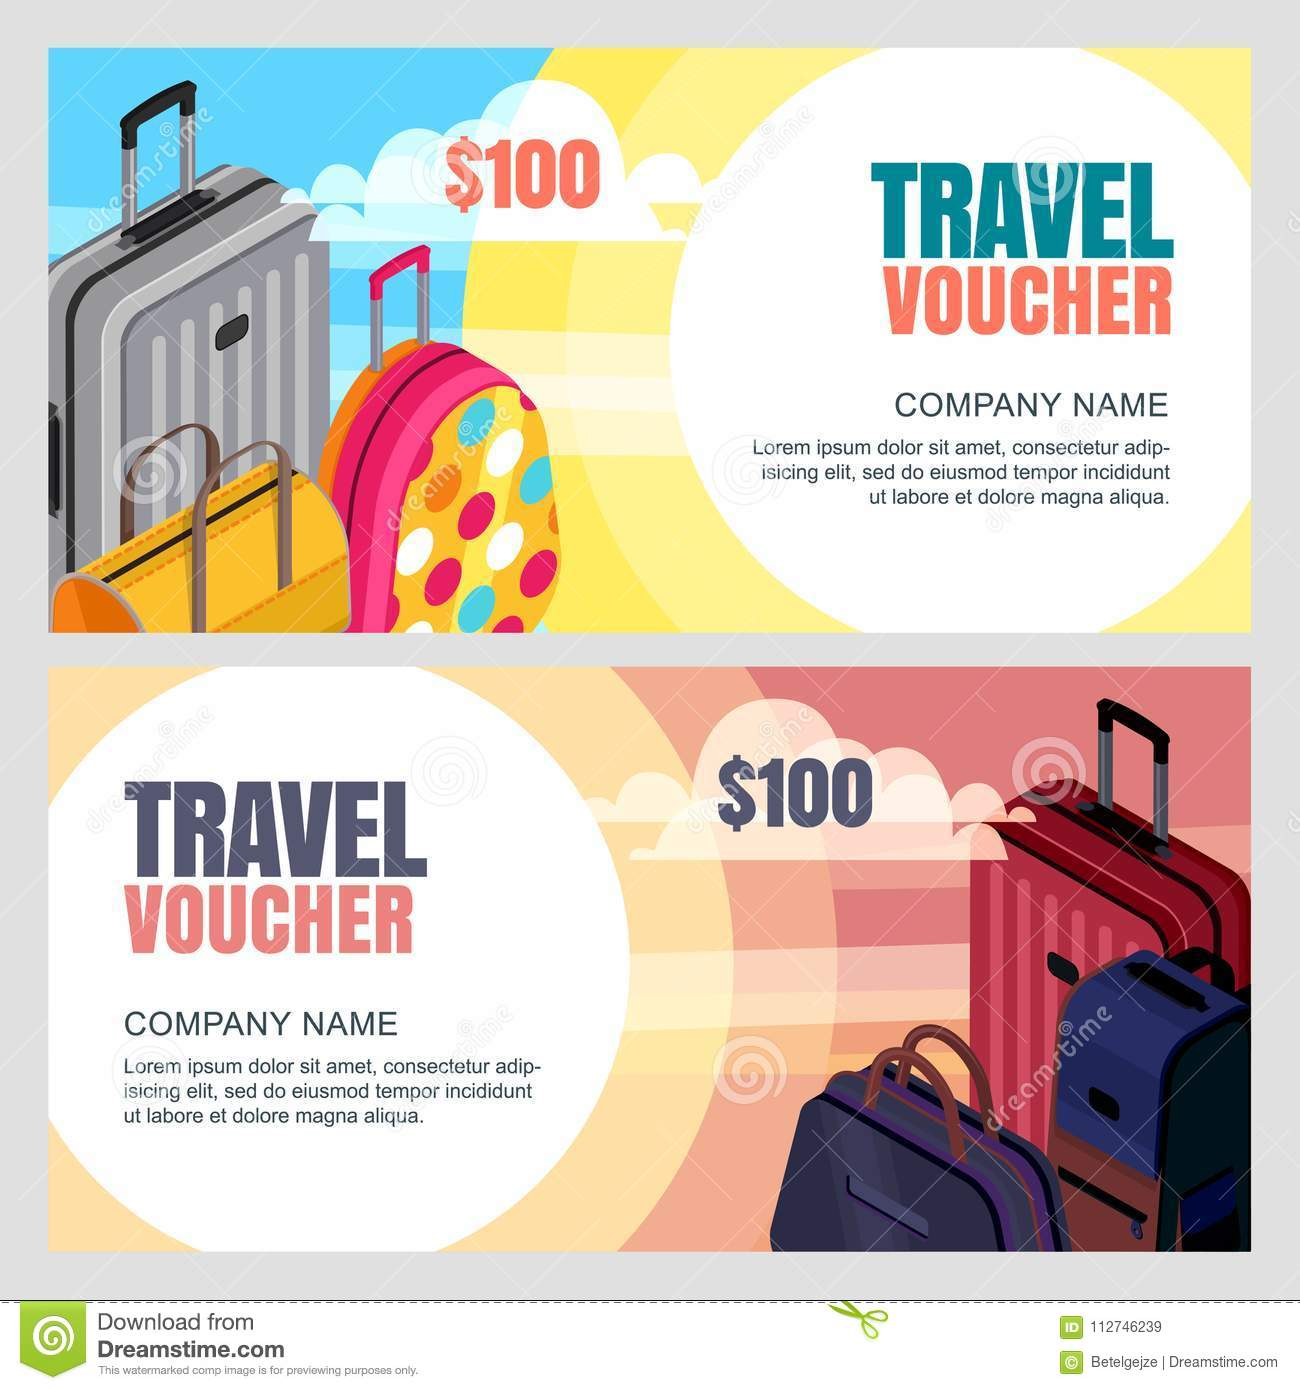 Vector travel voucher template. 3d isometric illustration of luggage bags.  Banner, coupon, certificate, flyer layout. 5e46166266